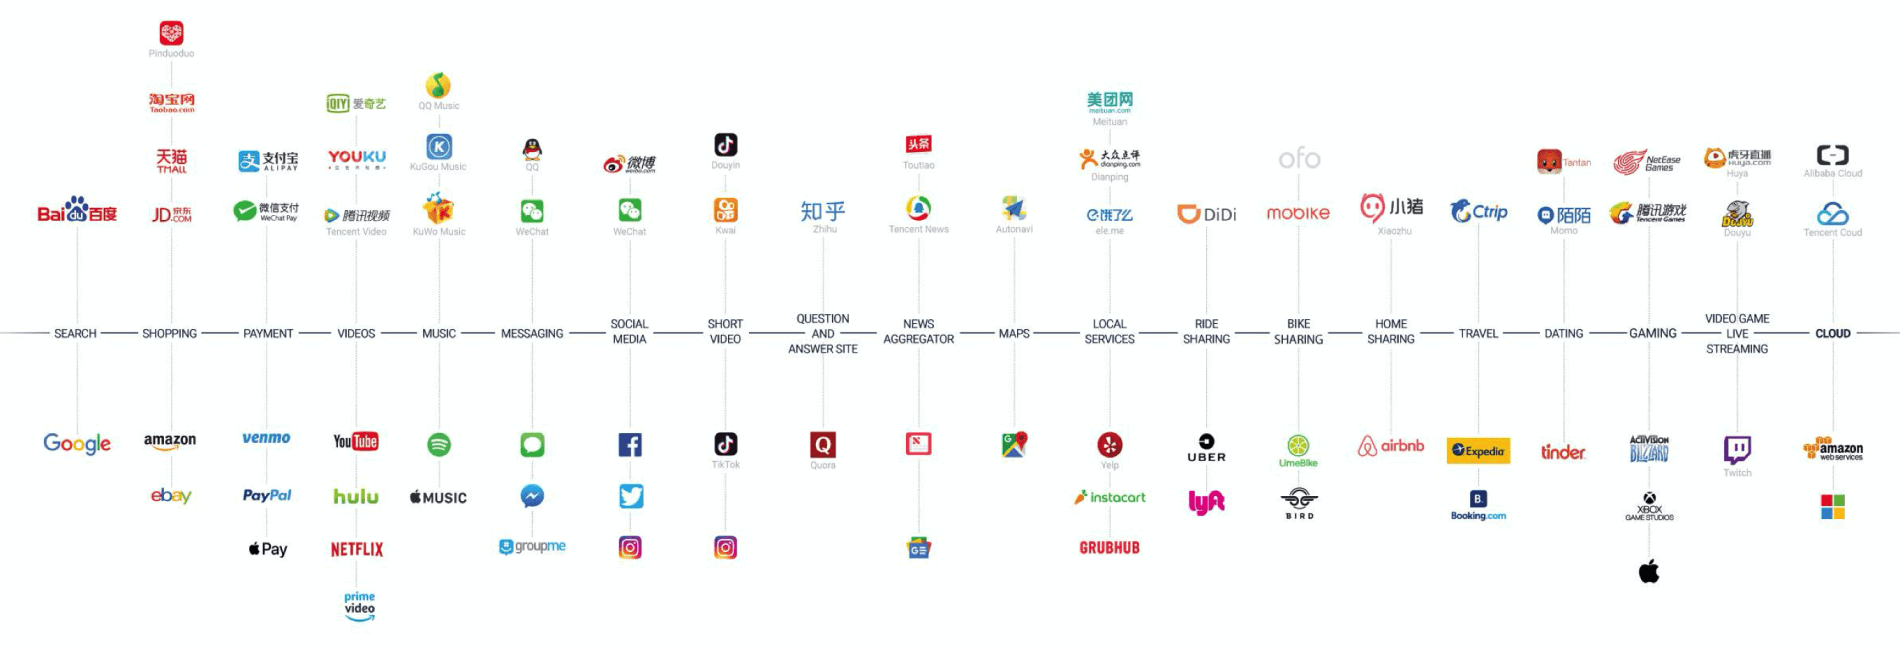 China Internet Report 2019.